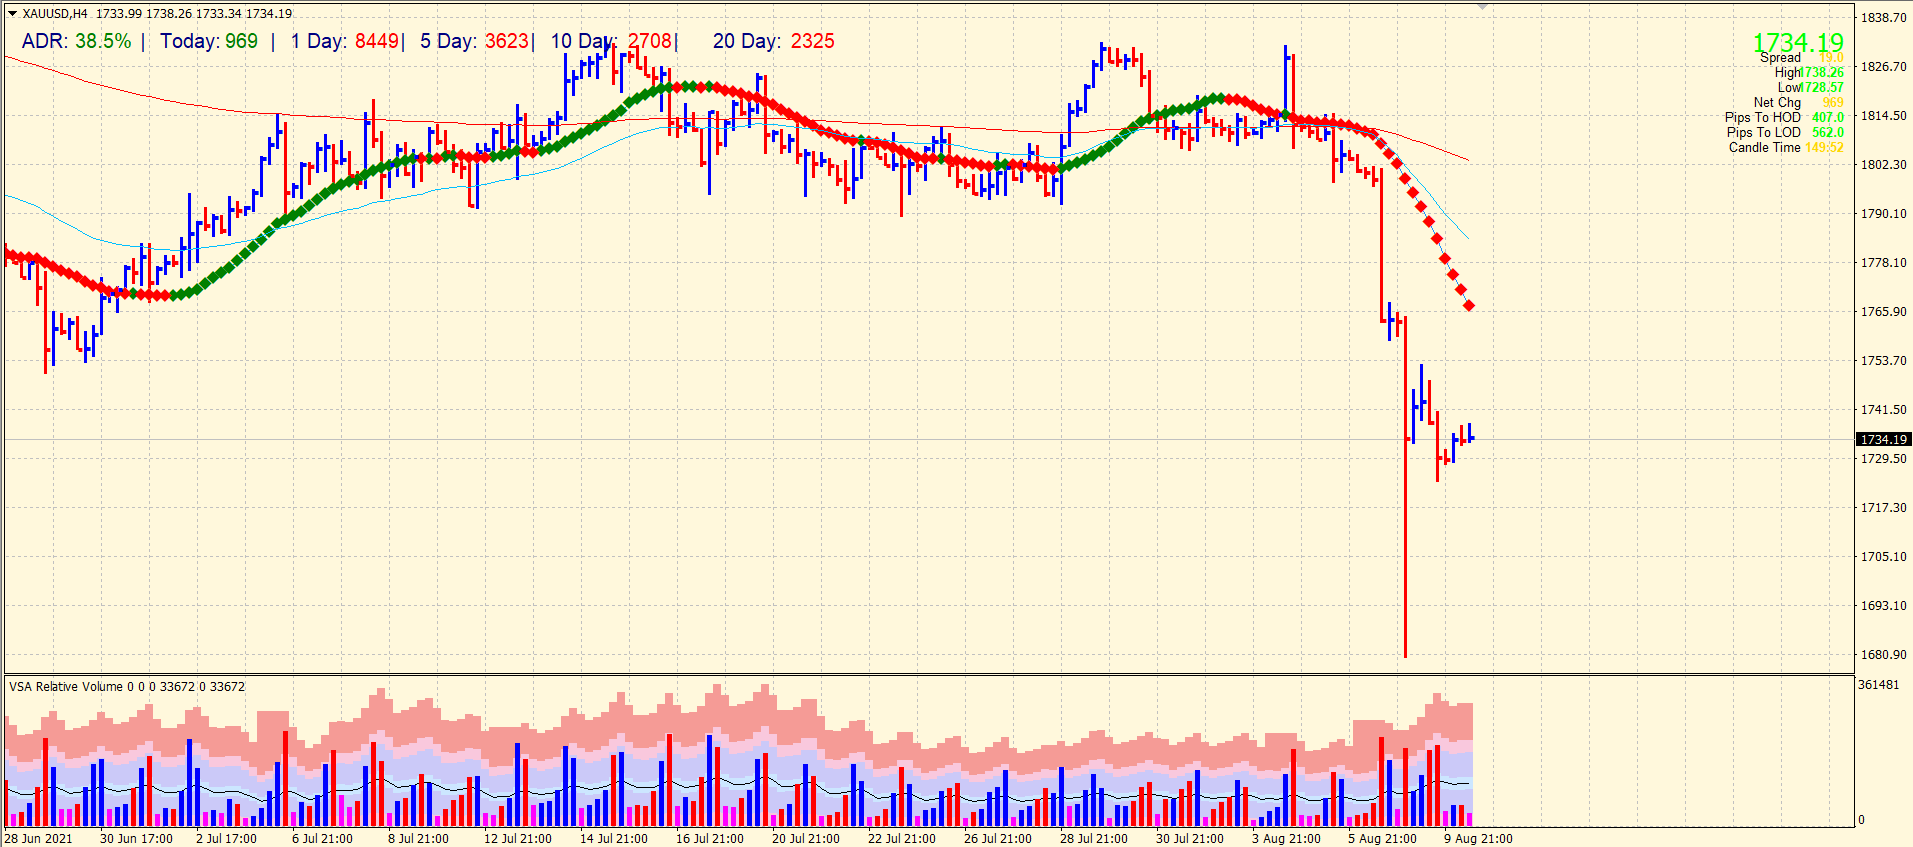 Gold price forecast 4-hour chart